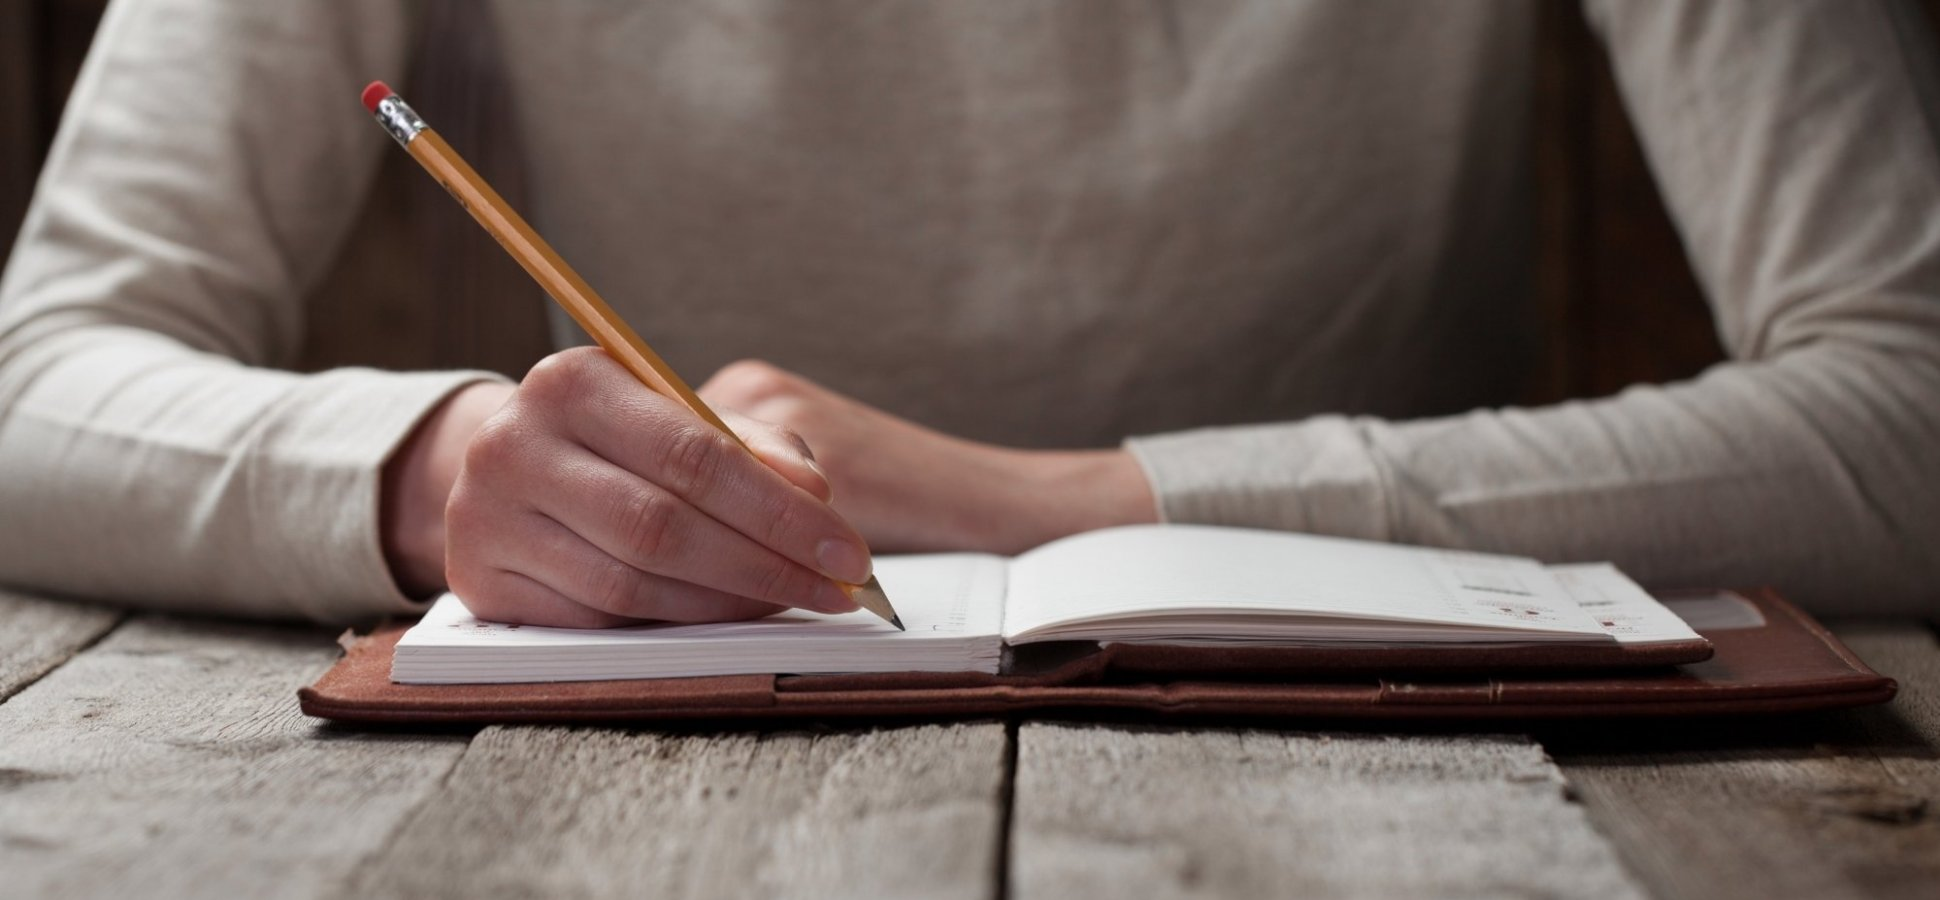 5 Simple Hacks to Improve Your Writing